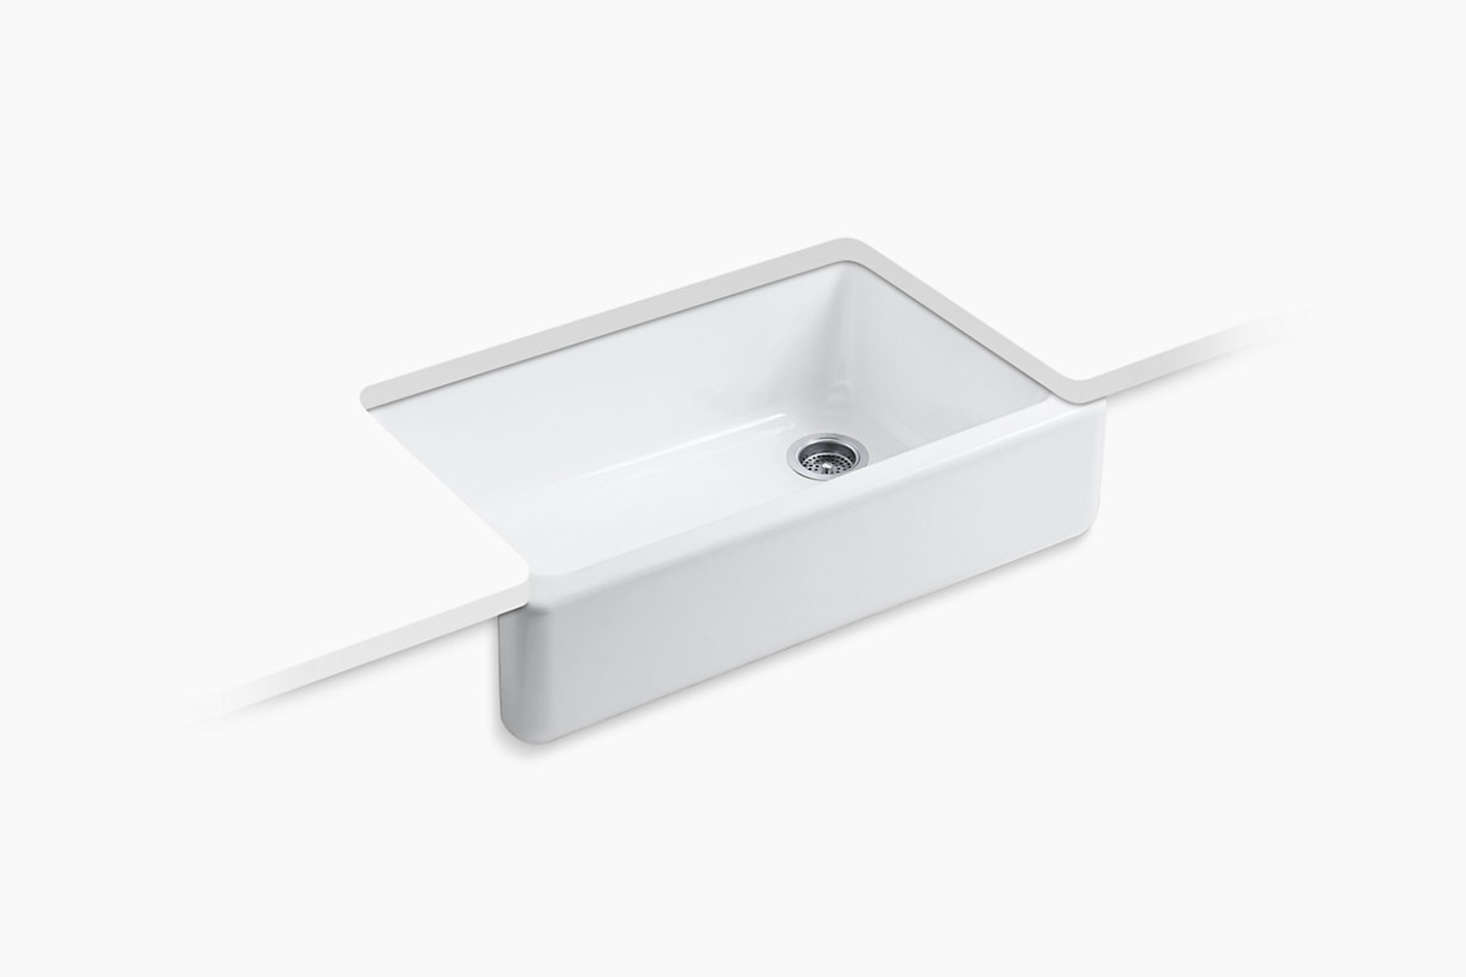 The farmhouse sink is the Kohler Whitehaven Self-Trimming Under-Mount Sink for $src=